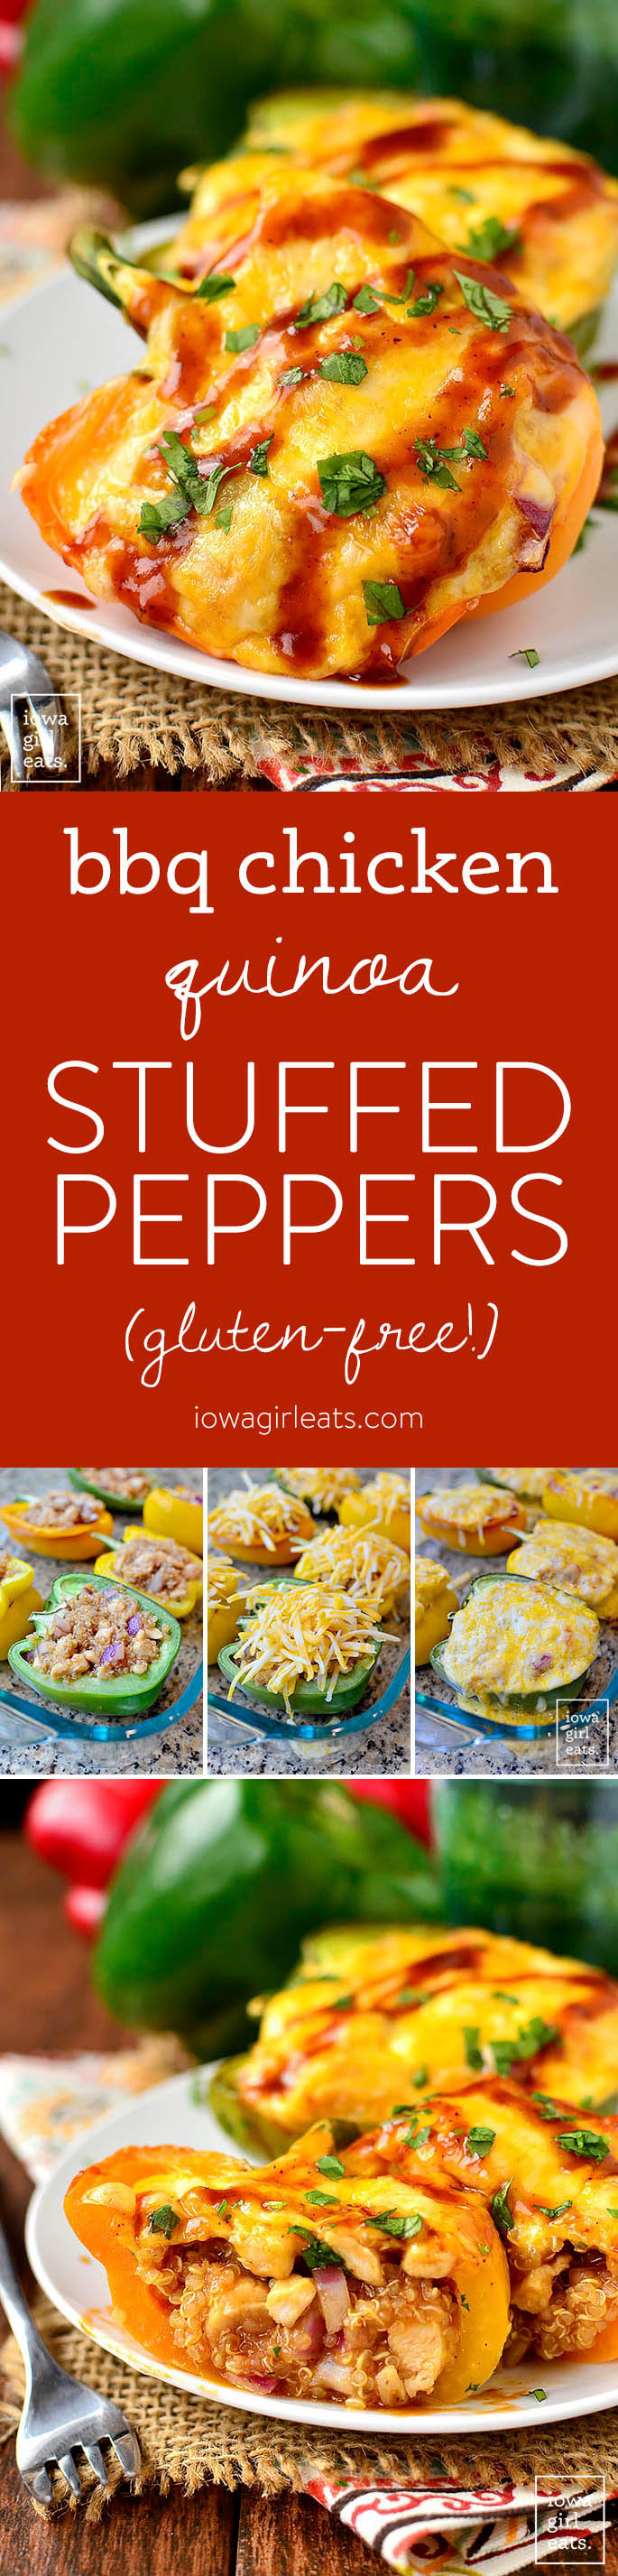 BBQ Chicken Quinoa Stuffed Peppers are full of flavor yet light and healthy. This gluten-free dinner recipe couldn't be more delicious! | iowagirleats.com